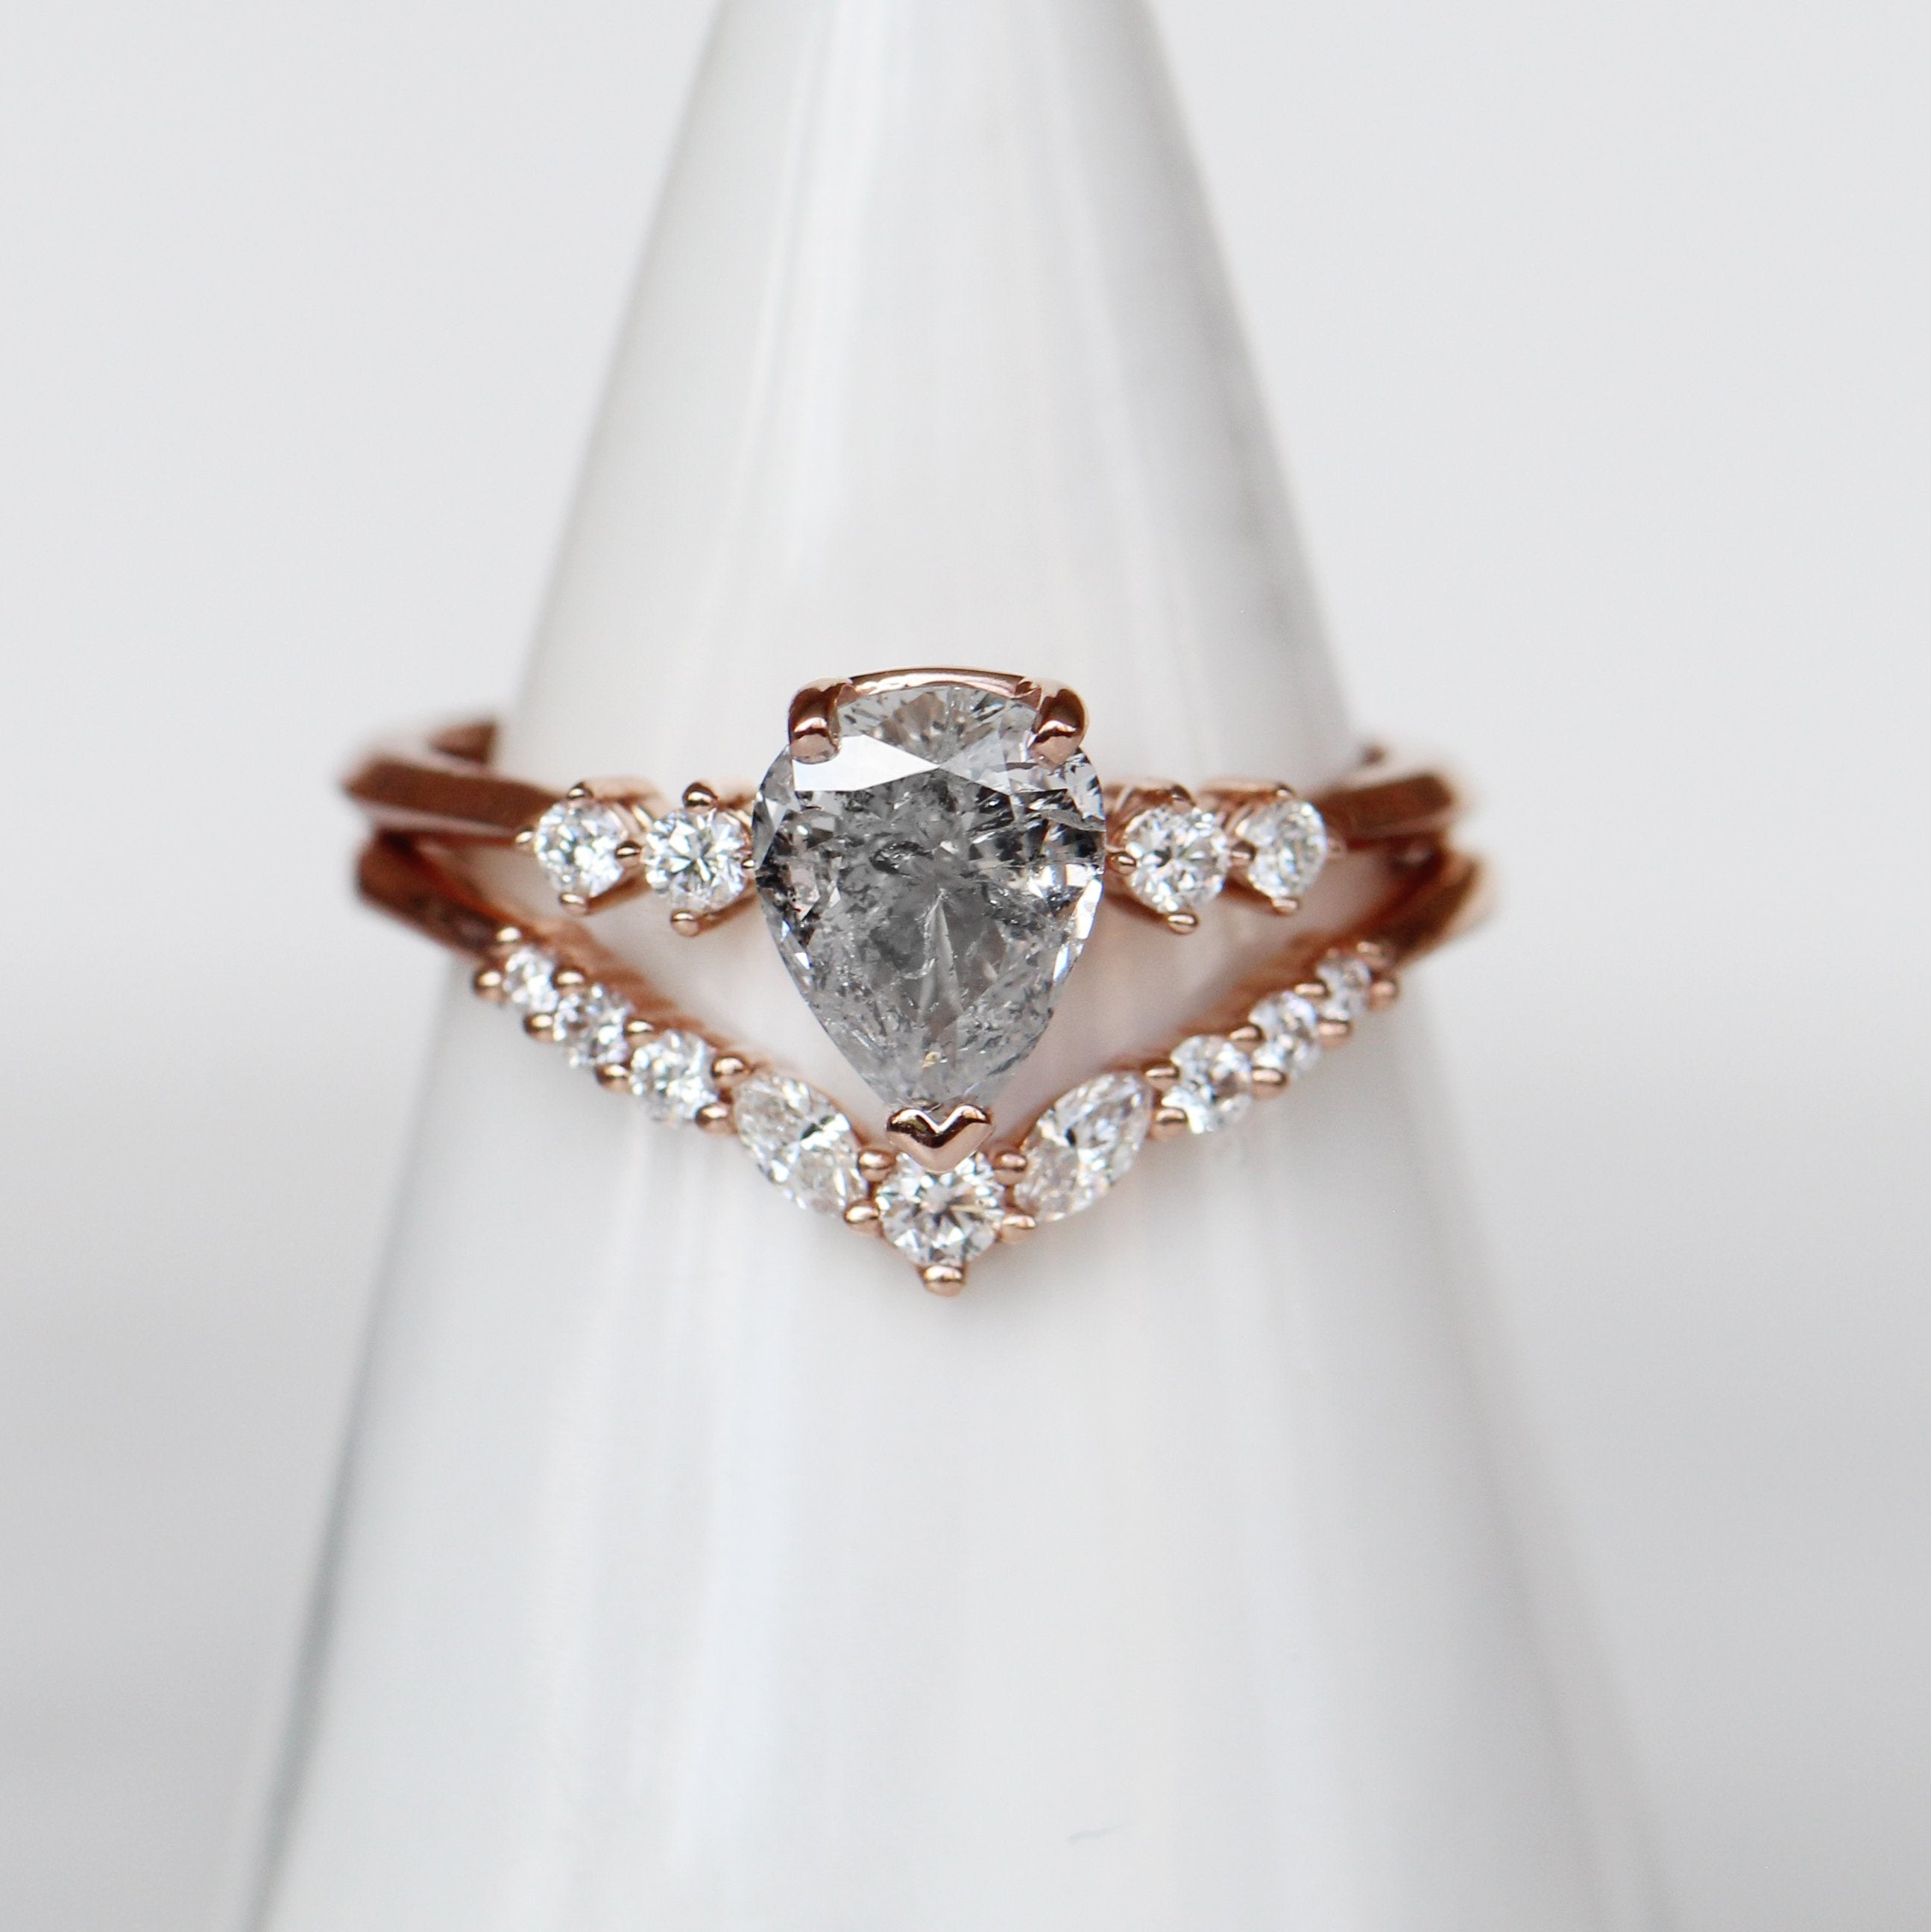 Cordelia Setting - Salt & Pepper Celestial Diamond Engagement Rings and Wedding Bands  by Midwinter Co.